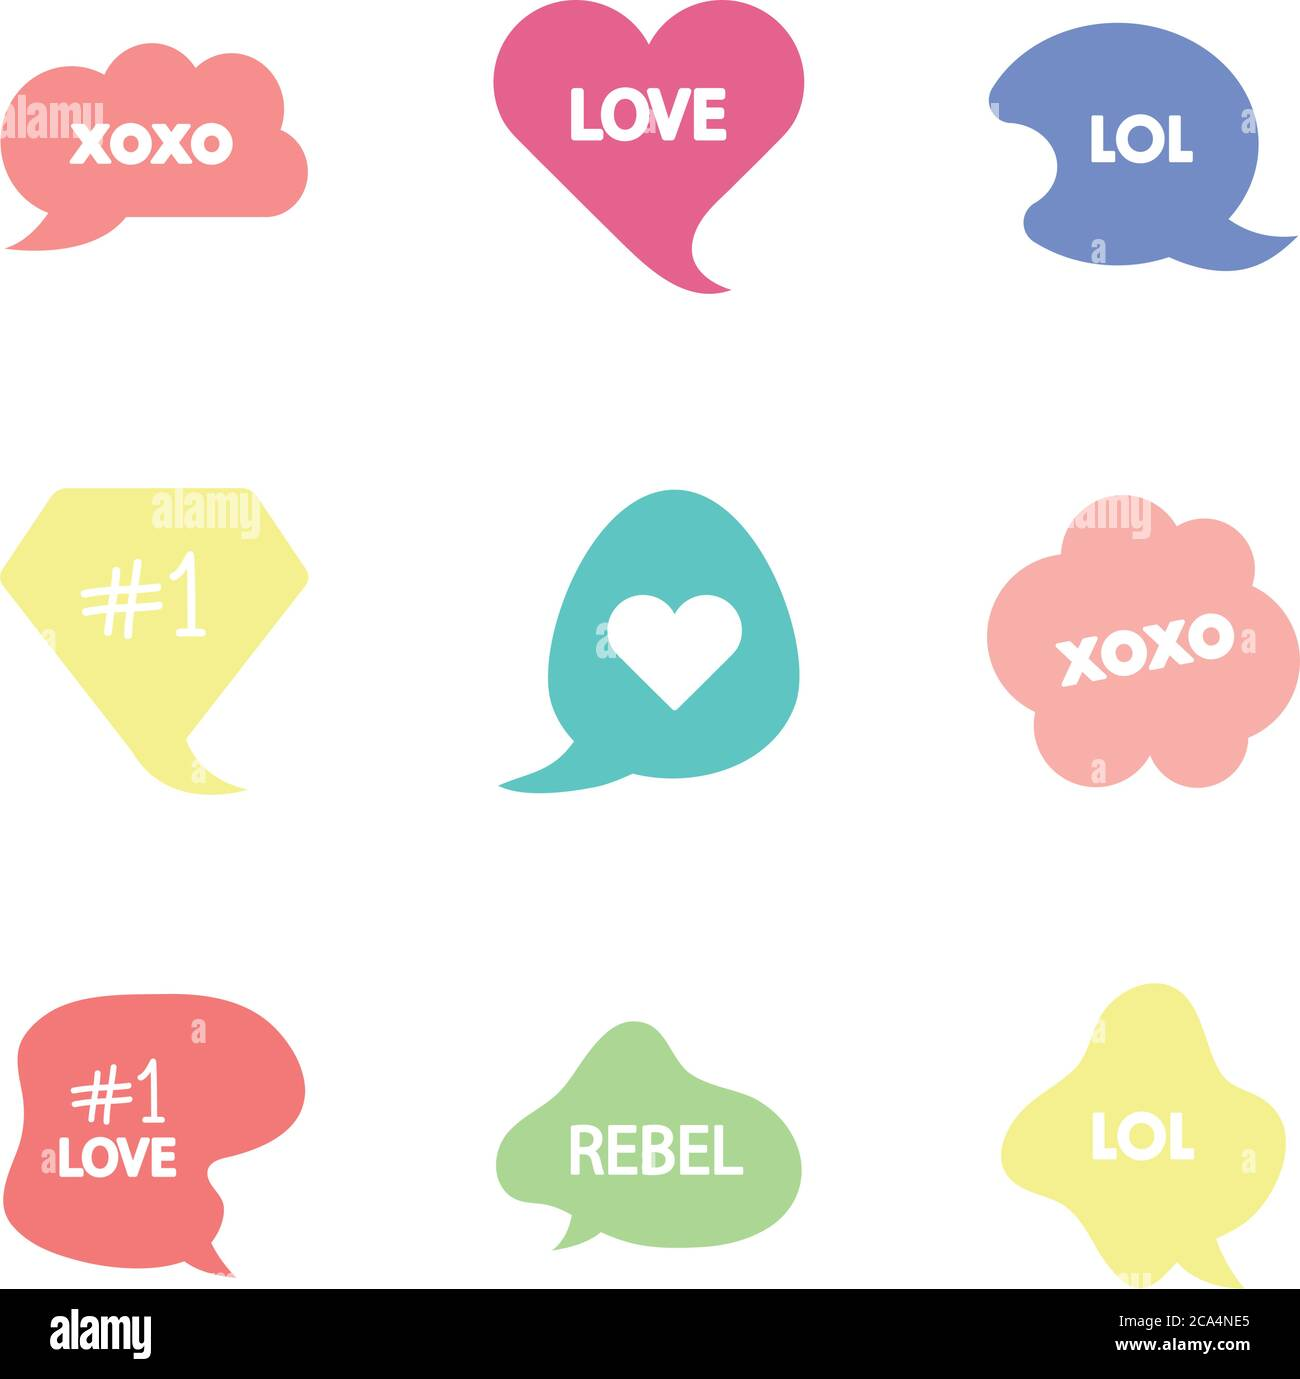 lol icon high resolution stock photography and images alamy https www alamy com colorful slang bubbles icon set over white background line fill style vector illustration image367668957 html